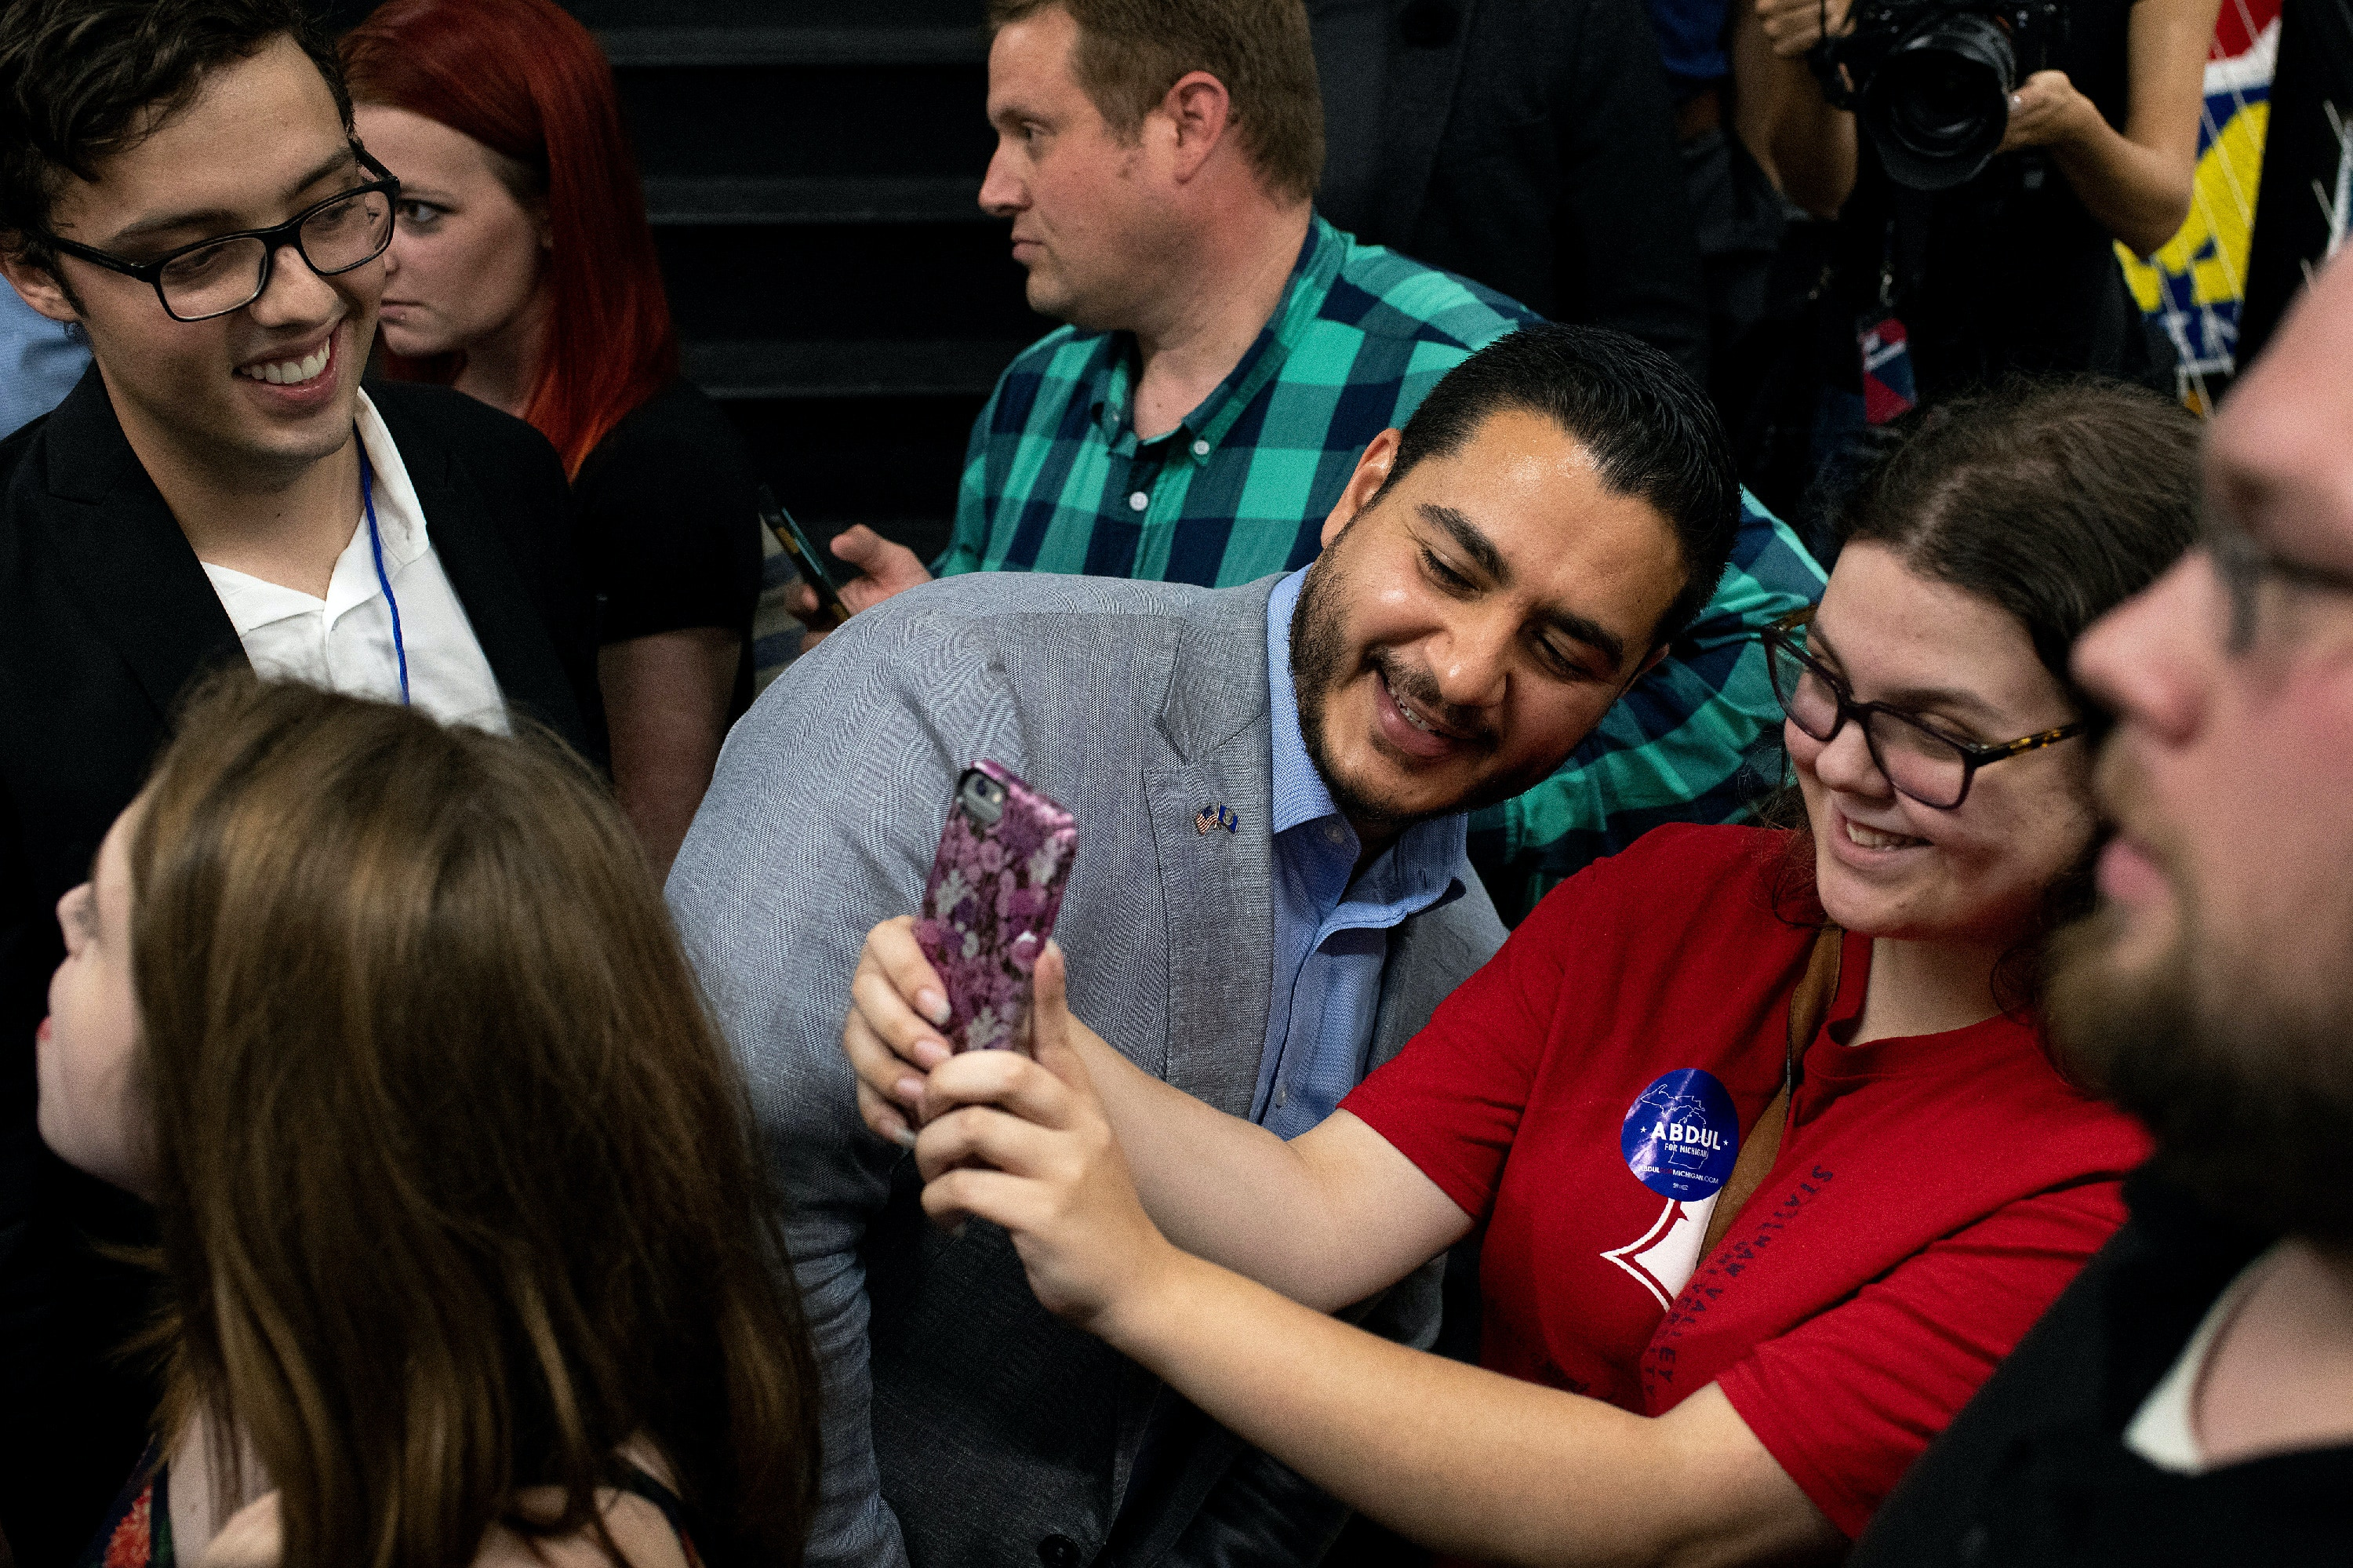 Michigan Democratic Gubernatorial candidate Abdul El-Sayed takes a photo with Rebecca Gillette, of Mount Morris, during his campaign rally with Alexandria Ocasio-Cortez at the Ferris Wheel building in Flint, Michigan on Saturday, July 28, 2018. (Rachel Woolf for The Intercept)